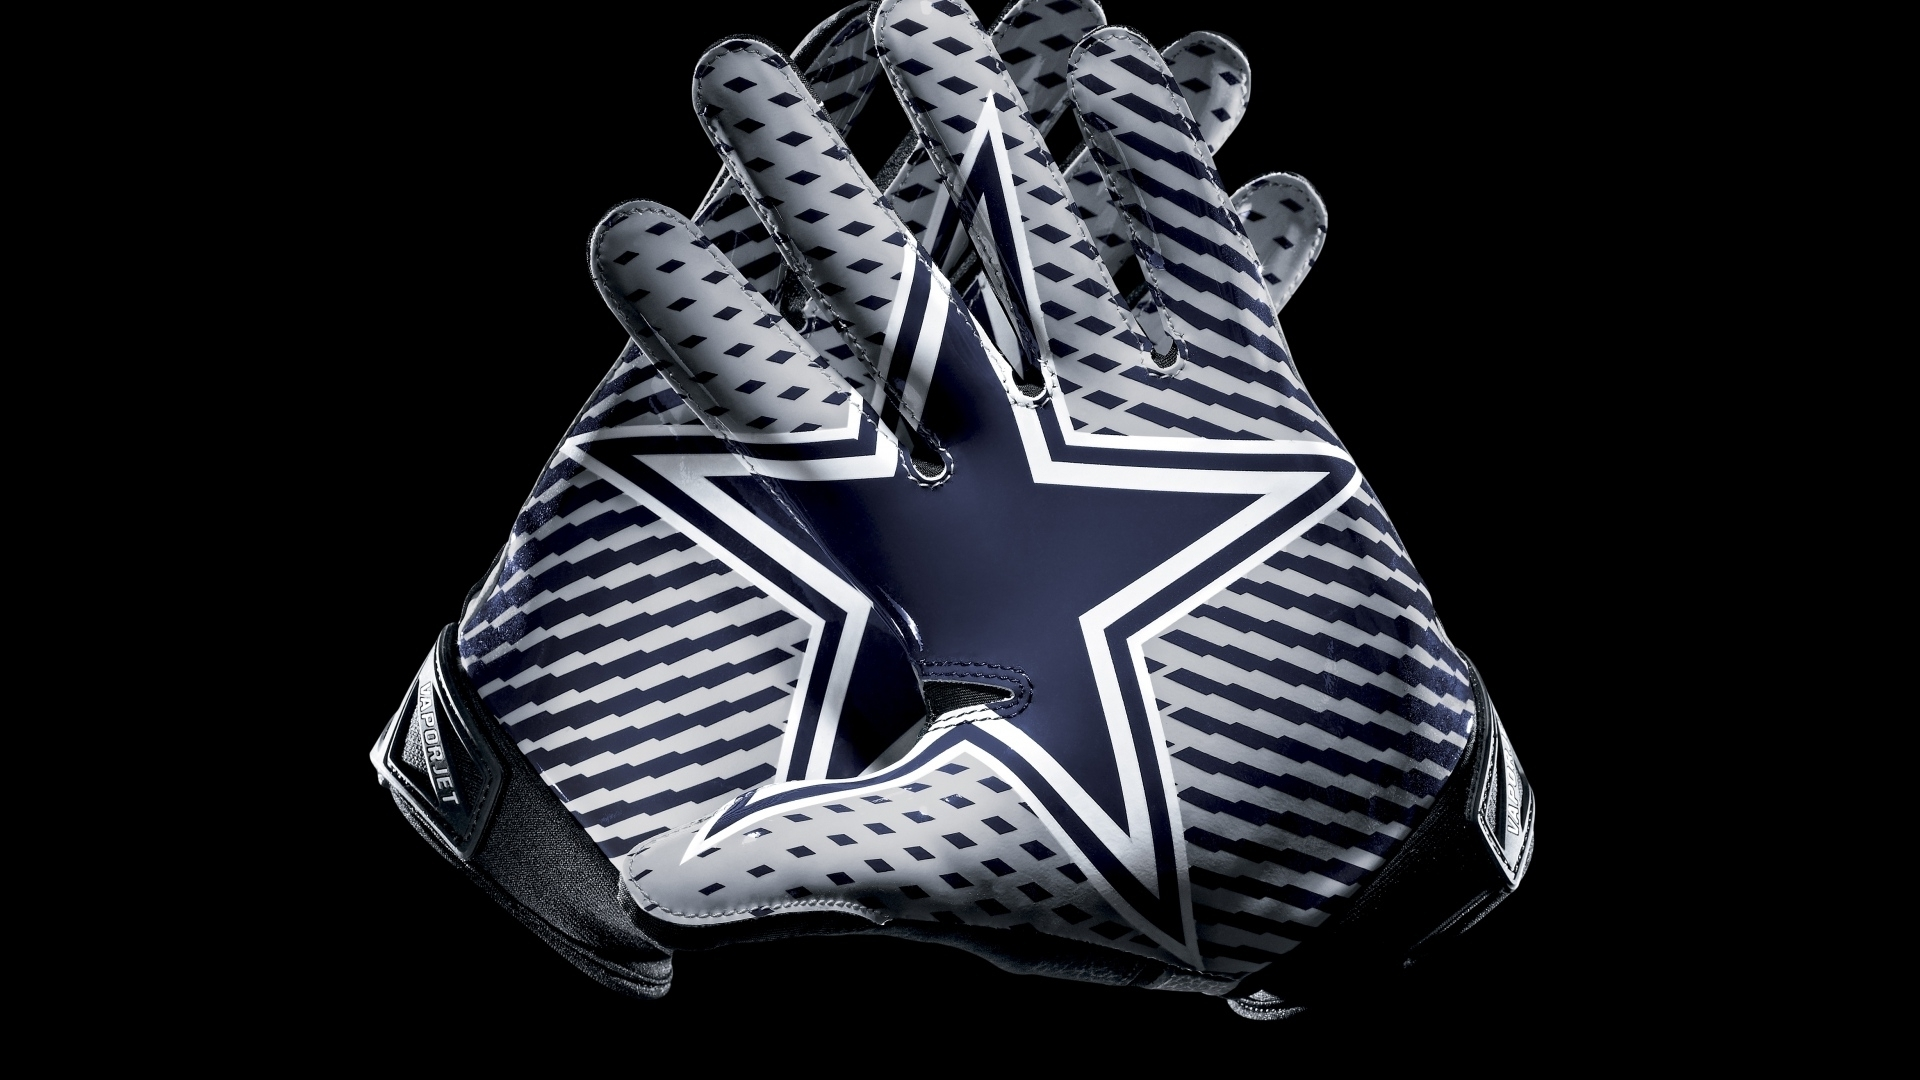 10 latest dallas cowboys free wallpaper full hd 1080p for pc background